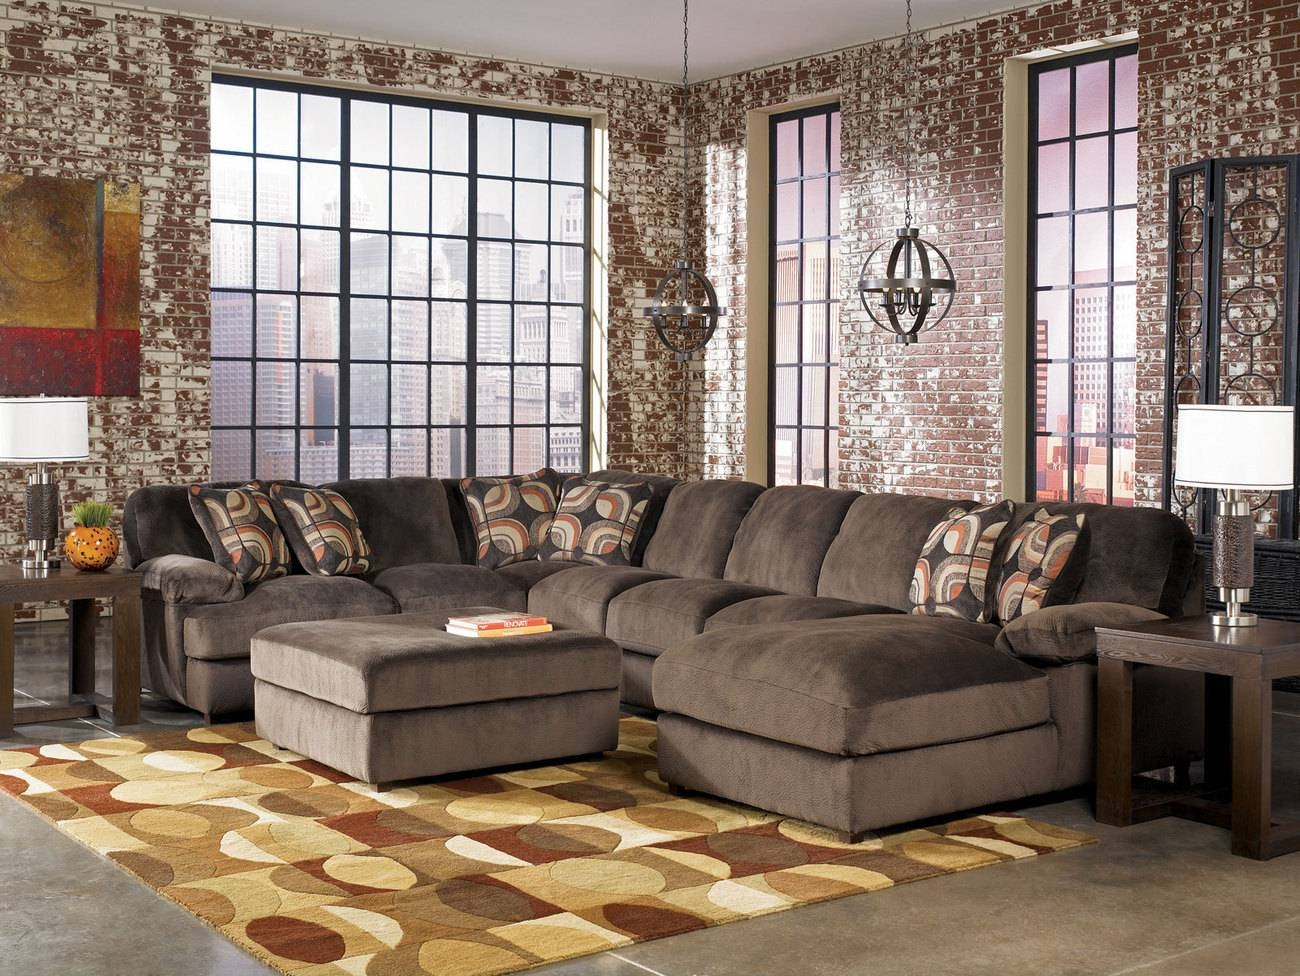 Popular Plush Sectional Sofas 26 With Additional Champion with Champion Sectional Sofa (Image 20 of 30)